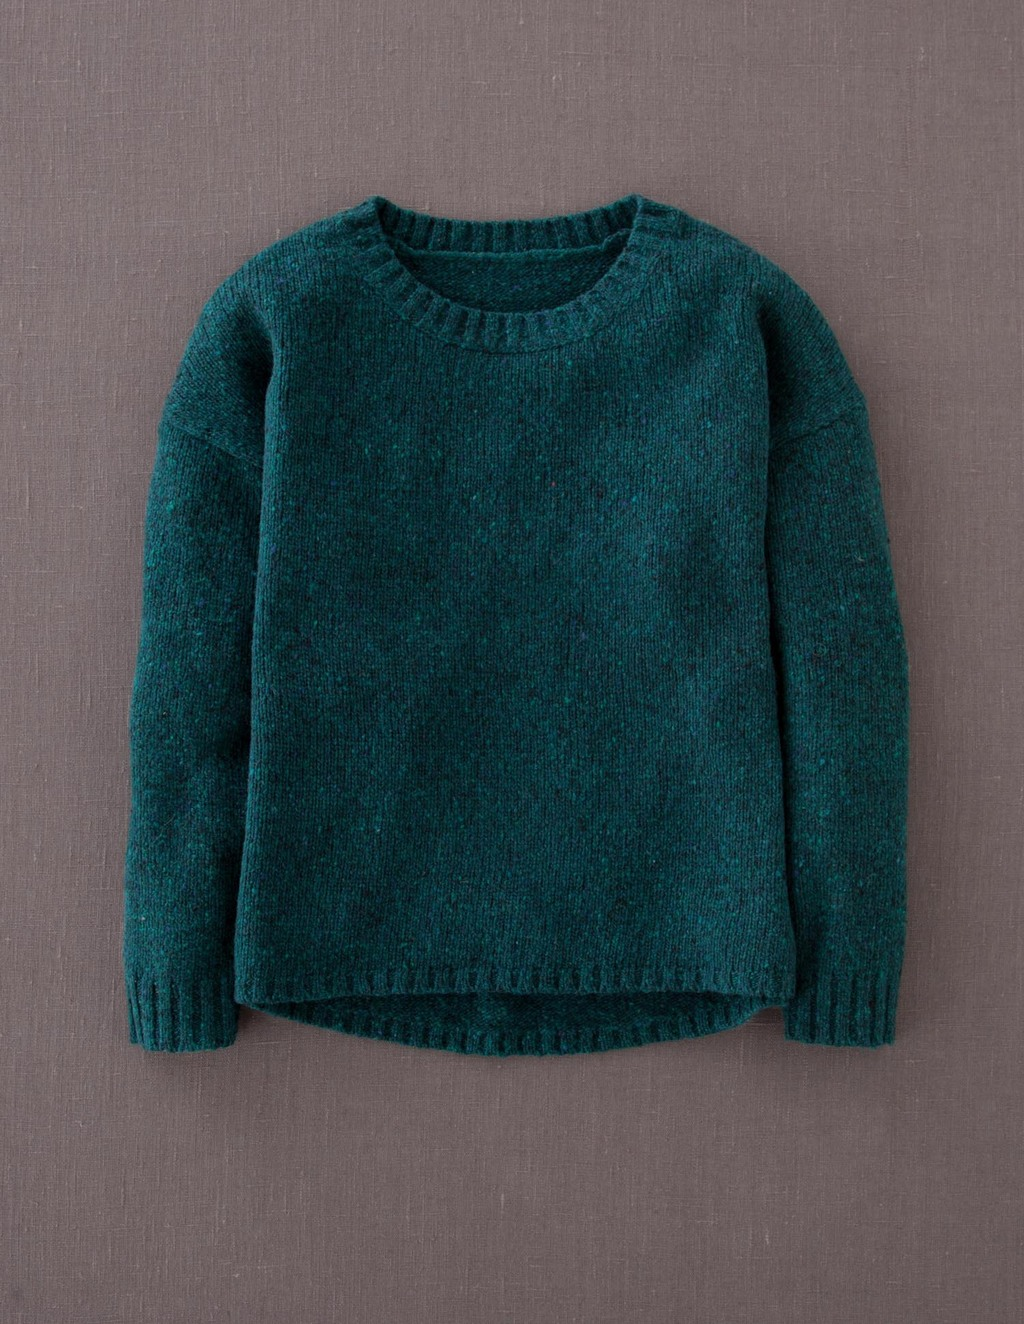 Skye Jumper - pattern: plain; style: standard; predominant colour: teal; occasions: casual; length: standard; fibres: wool - mix; fit: standard fit; neckline: crew; sleeve length: long sleeve; sleeve style: standard; texture group: knits/crochet; pattern type: knitted - other; season: a/w 2013